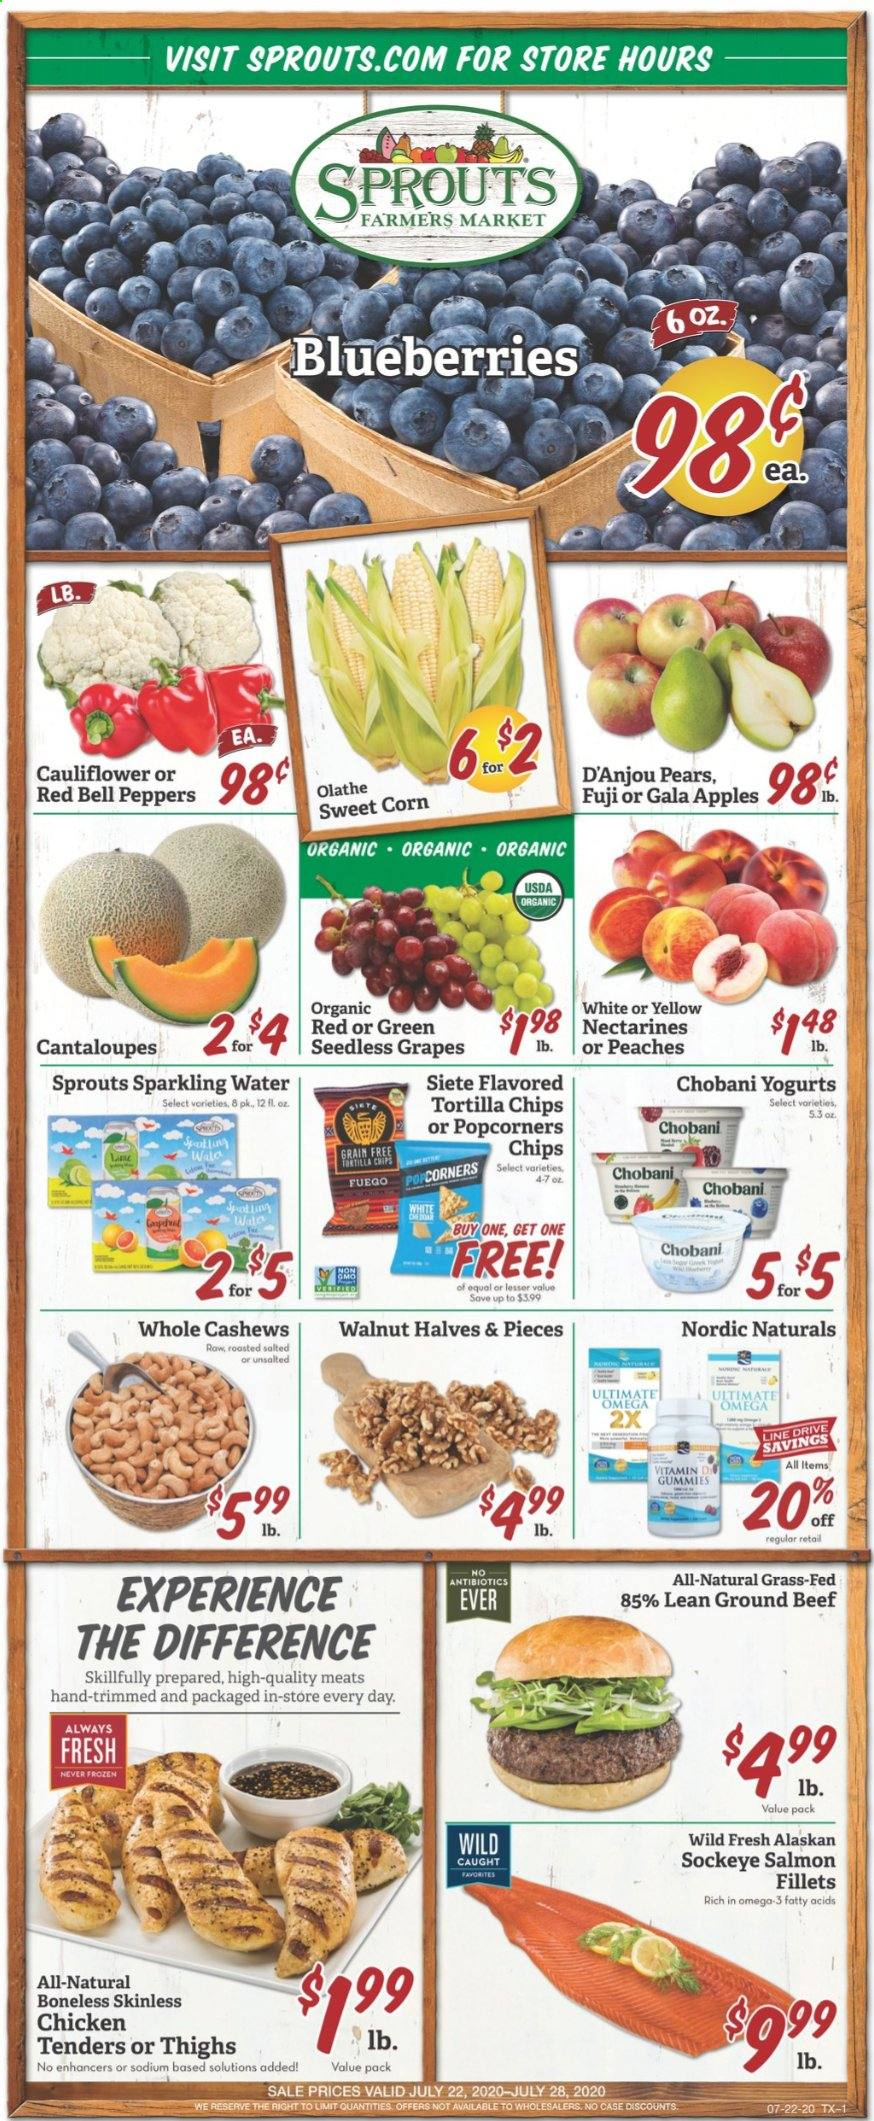 Sprouts Flyer - 07.22.2020 - 07.28.2020 - Sales products - beef meat, bell peppers, blueberries, cantaloupe, case, cashews, cauliflower, corn, gala apples, grapes, ground beef, nectarines, salmon, seedless grapes, tortilla chips, chicken, peaches, pears, omega-3, organic, chicken tenders, chips, sparkling water, peppers, peache. Page 1.